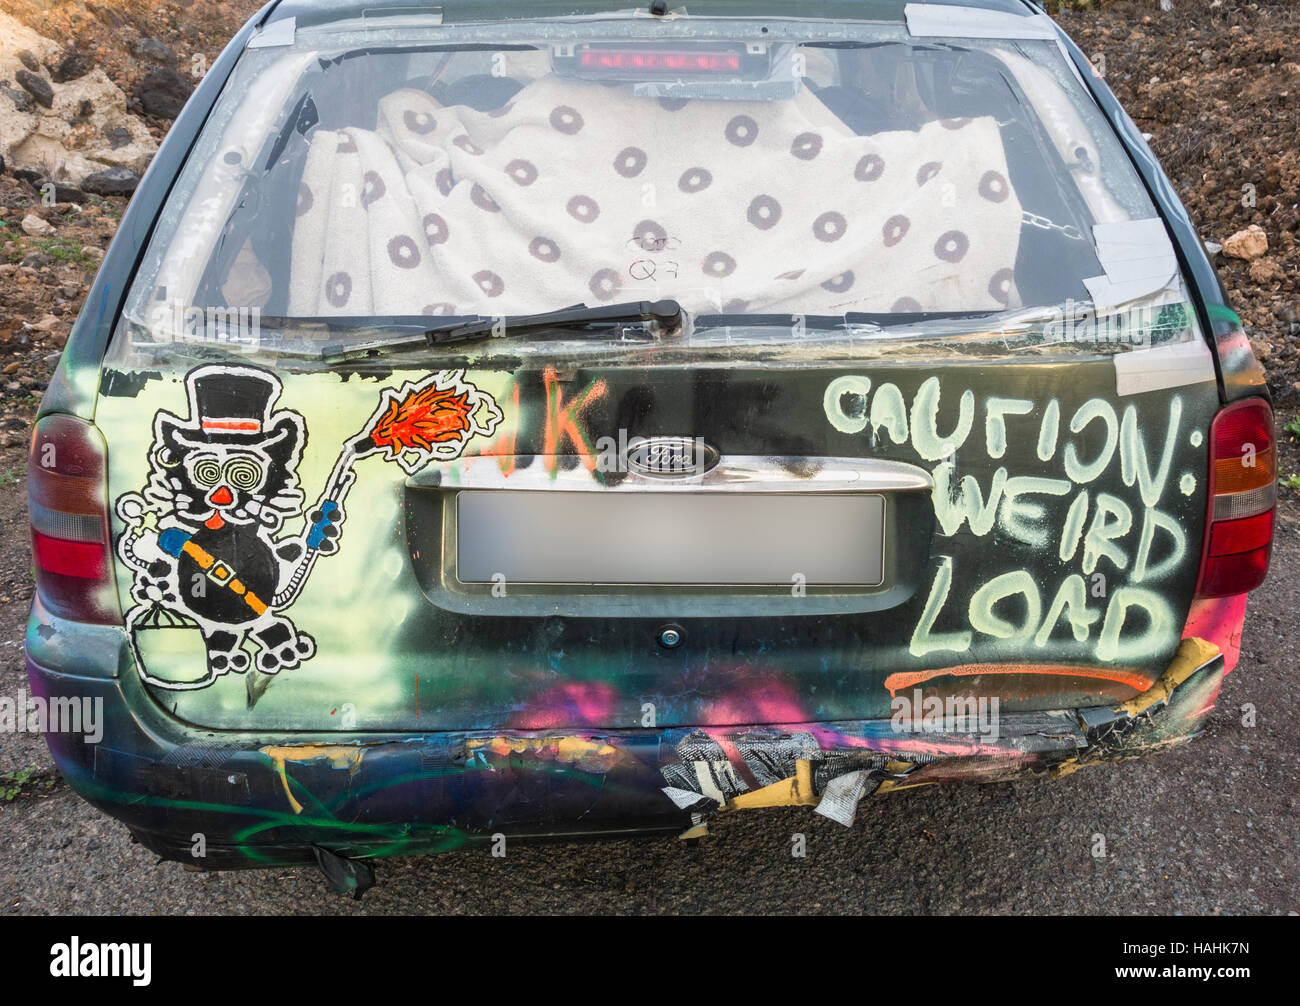 Caution weird load painted on car. - Stock Image